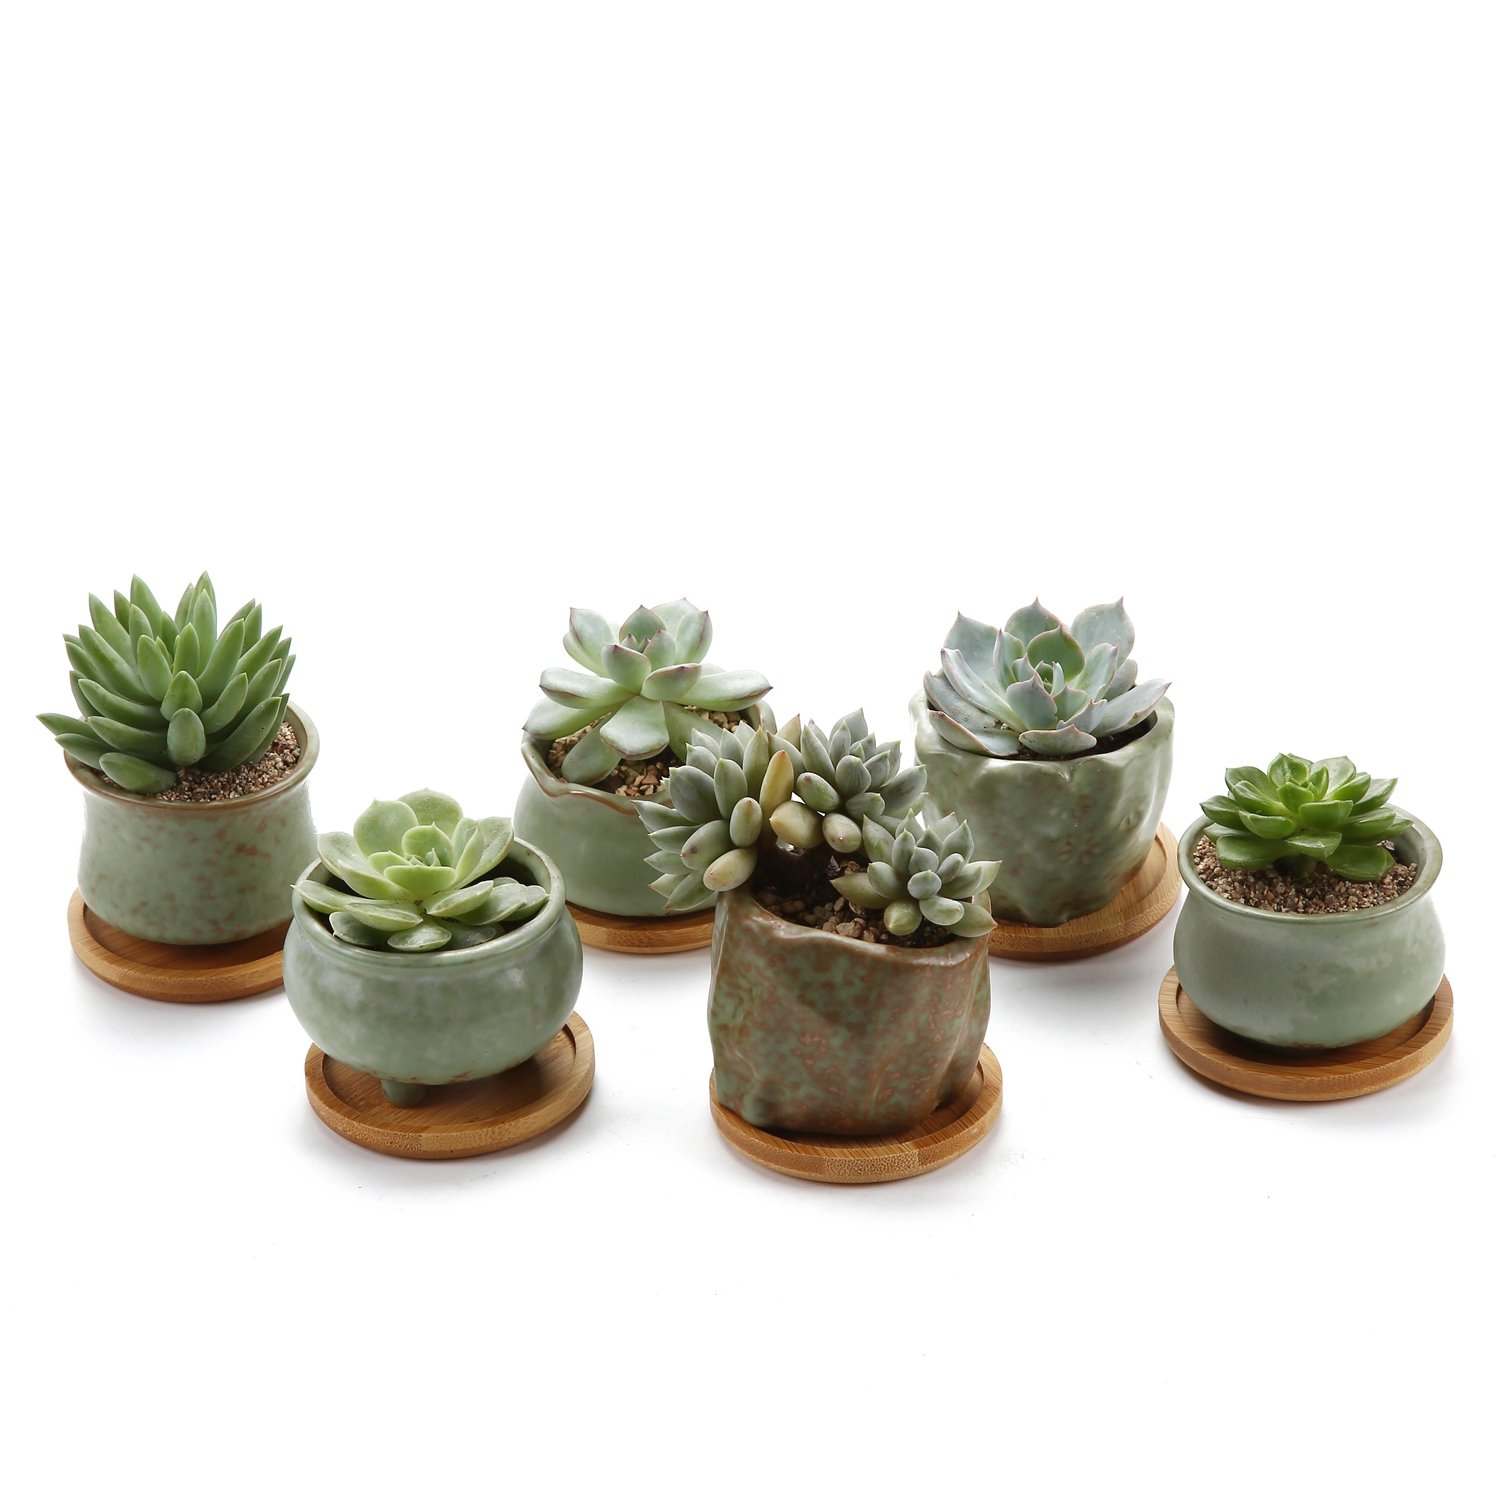 "Rachel's Choice ""Spring Serial Sets Sucuulent Cactus Plant Pots Flower Pots Planters Containers Window Boxes With Bamboo Tray Green Set Of 6 by T4 U"